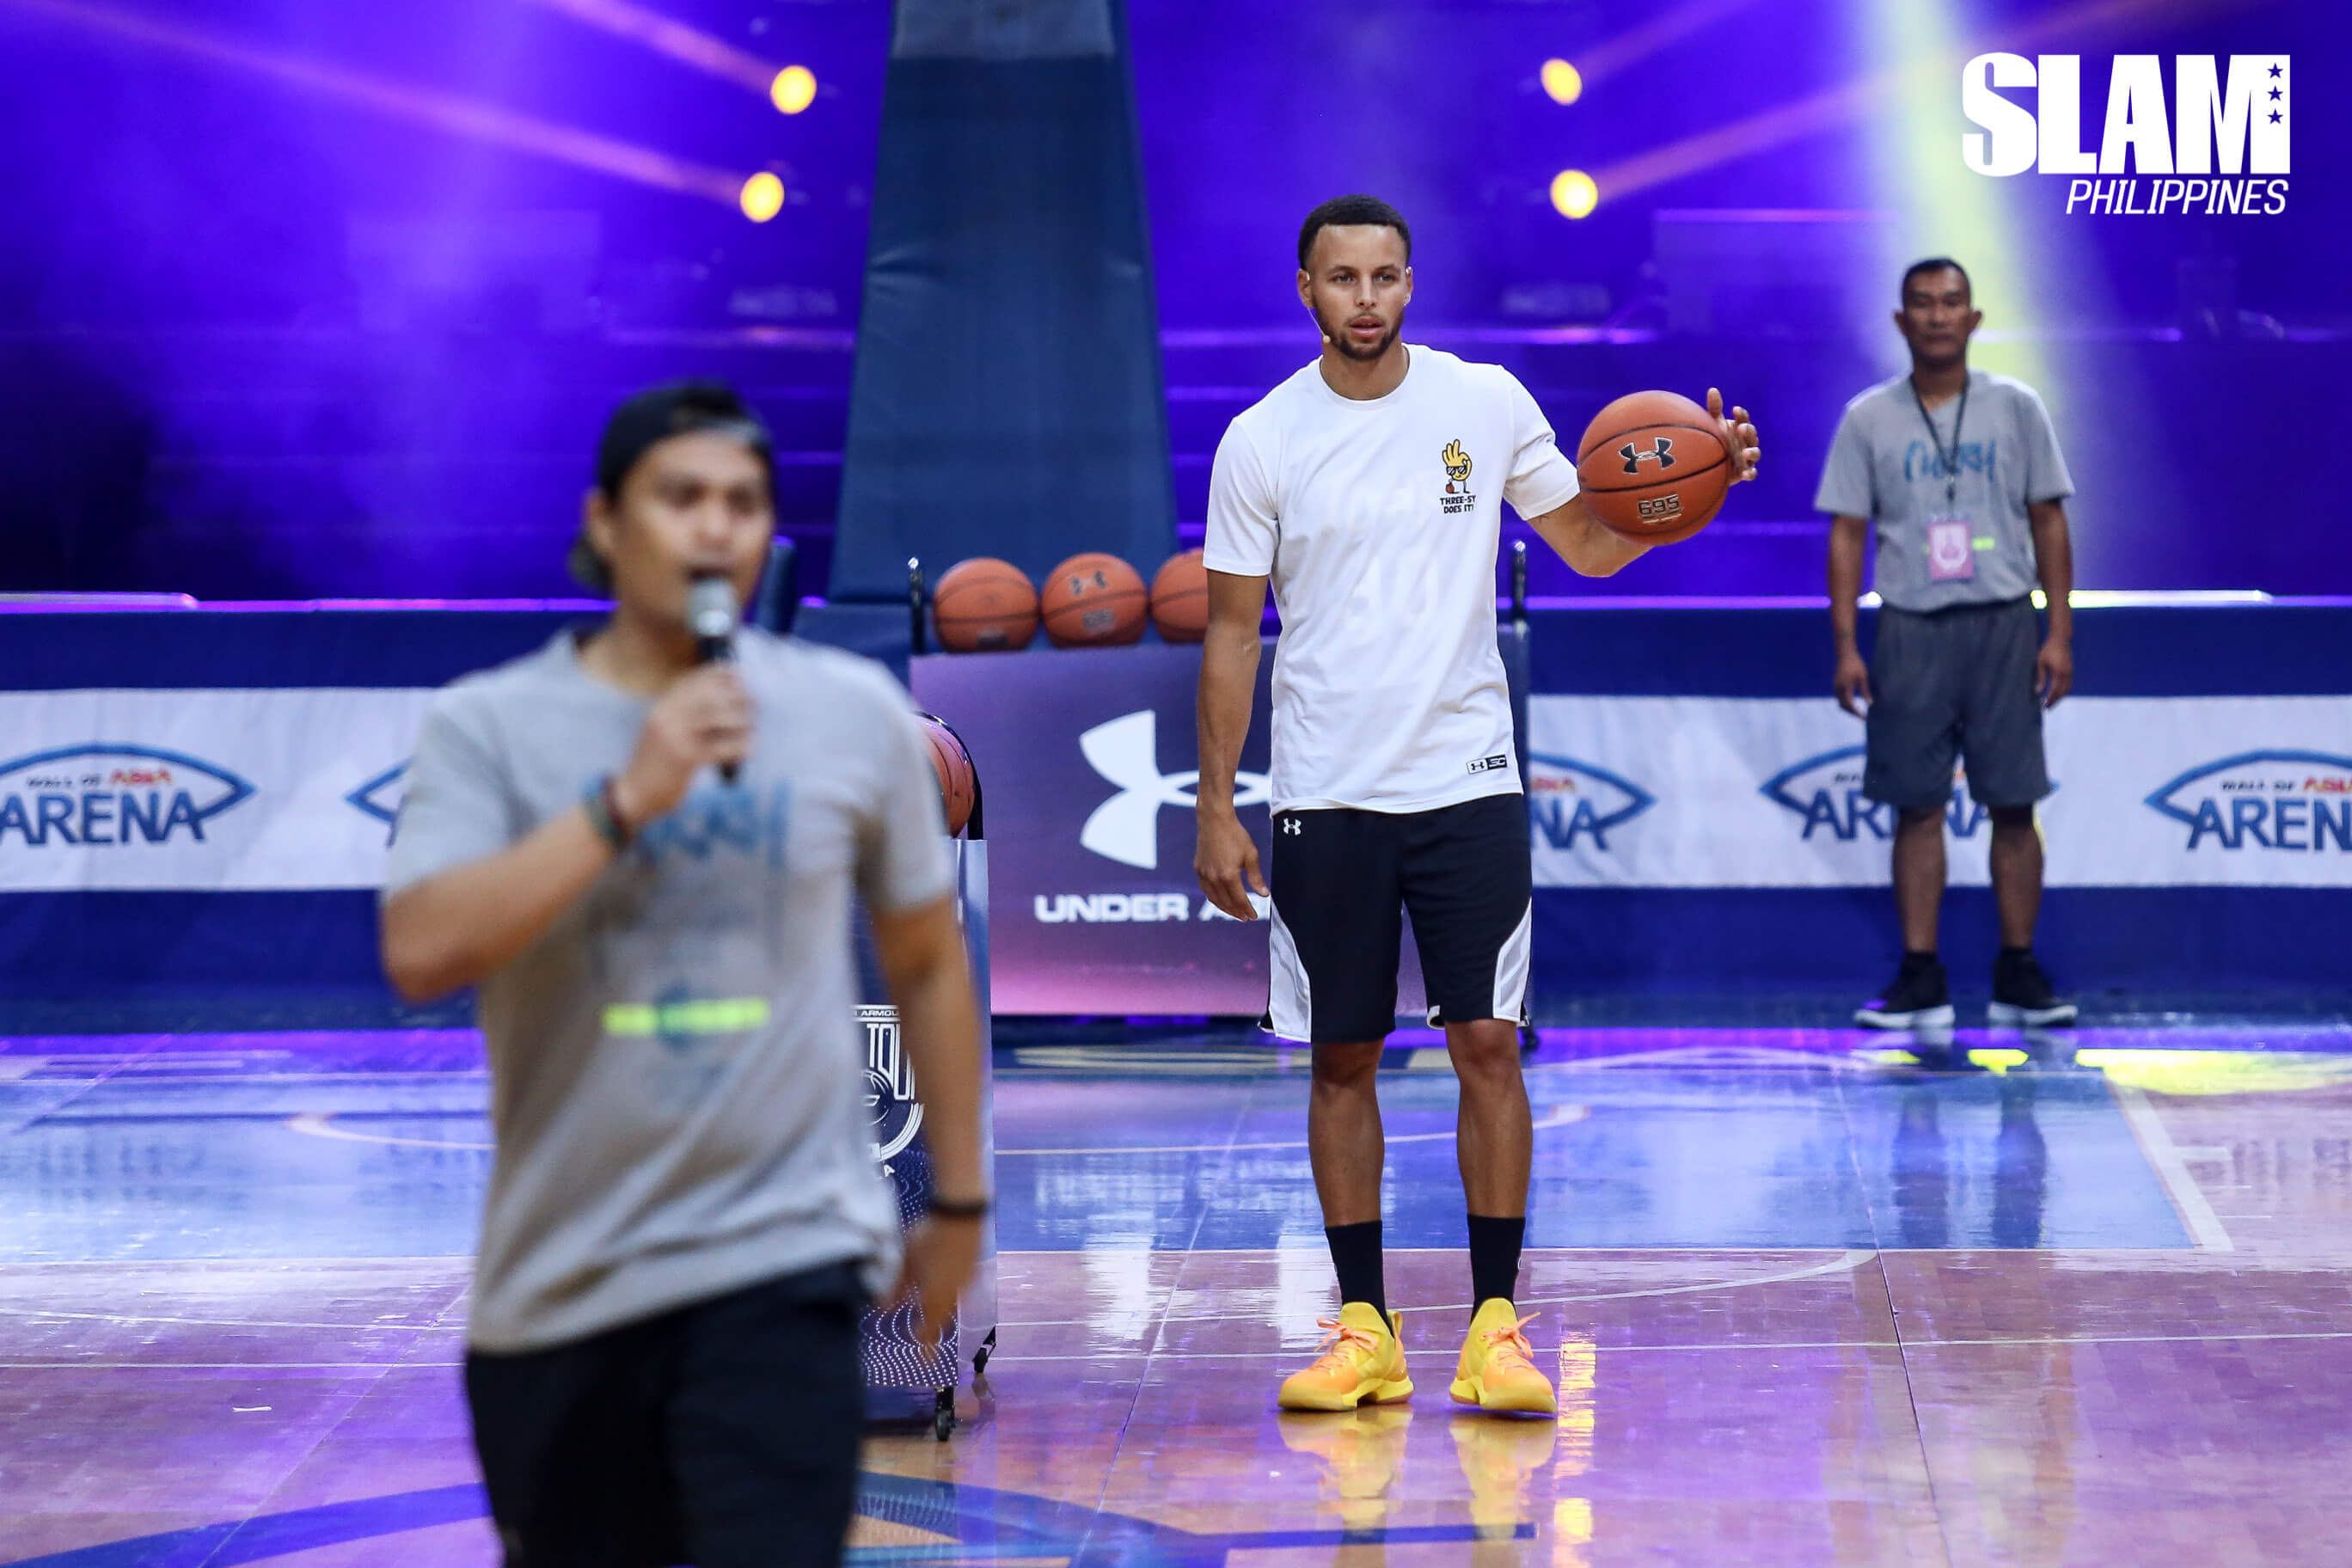 Steph Curry showcased his unlimited range and new kicks in the Manila leg of SC Asia Tour 2018